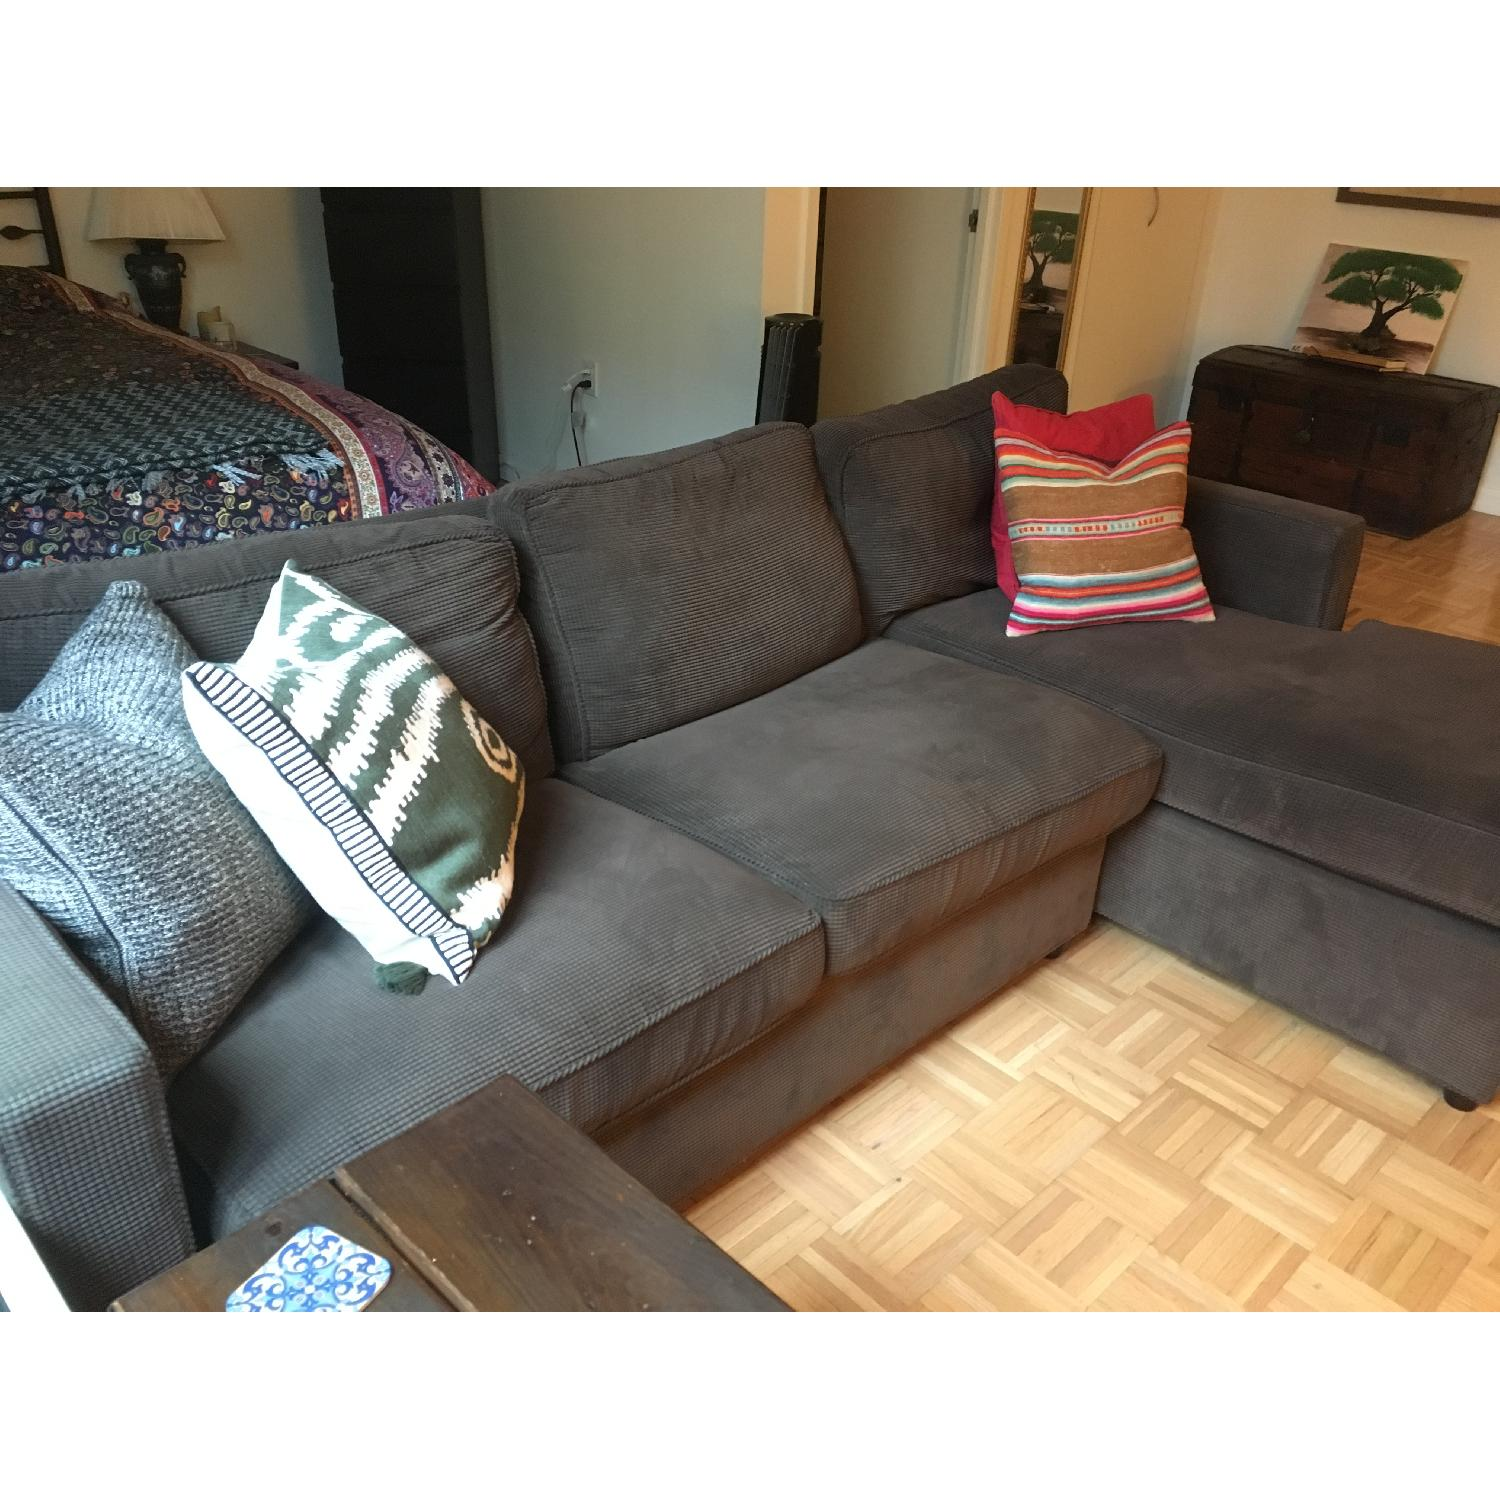 Fabulous Crate Barrel Chocolate Corduroy Chaise Sectional Sofa Gamerscity Chair Design For Home Gamerscityorg